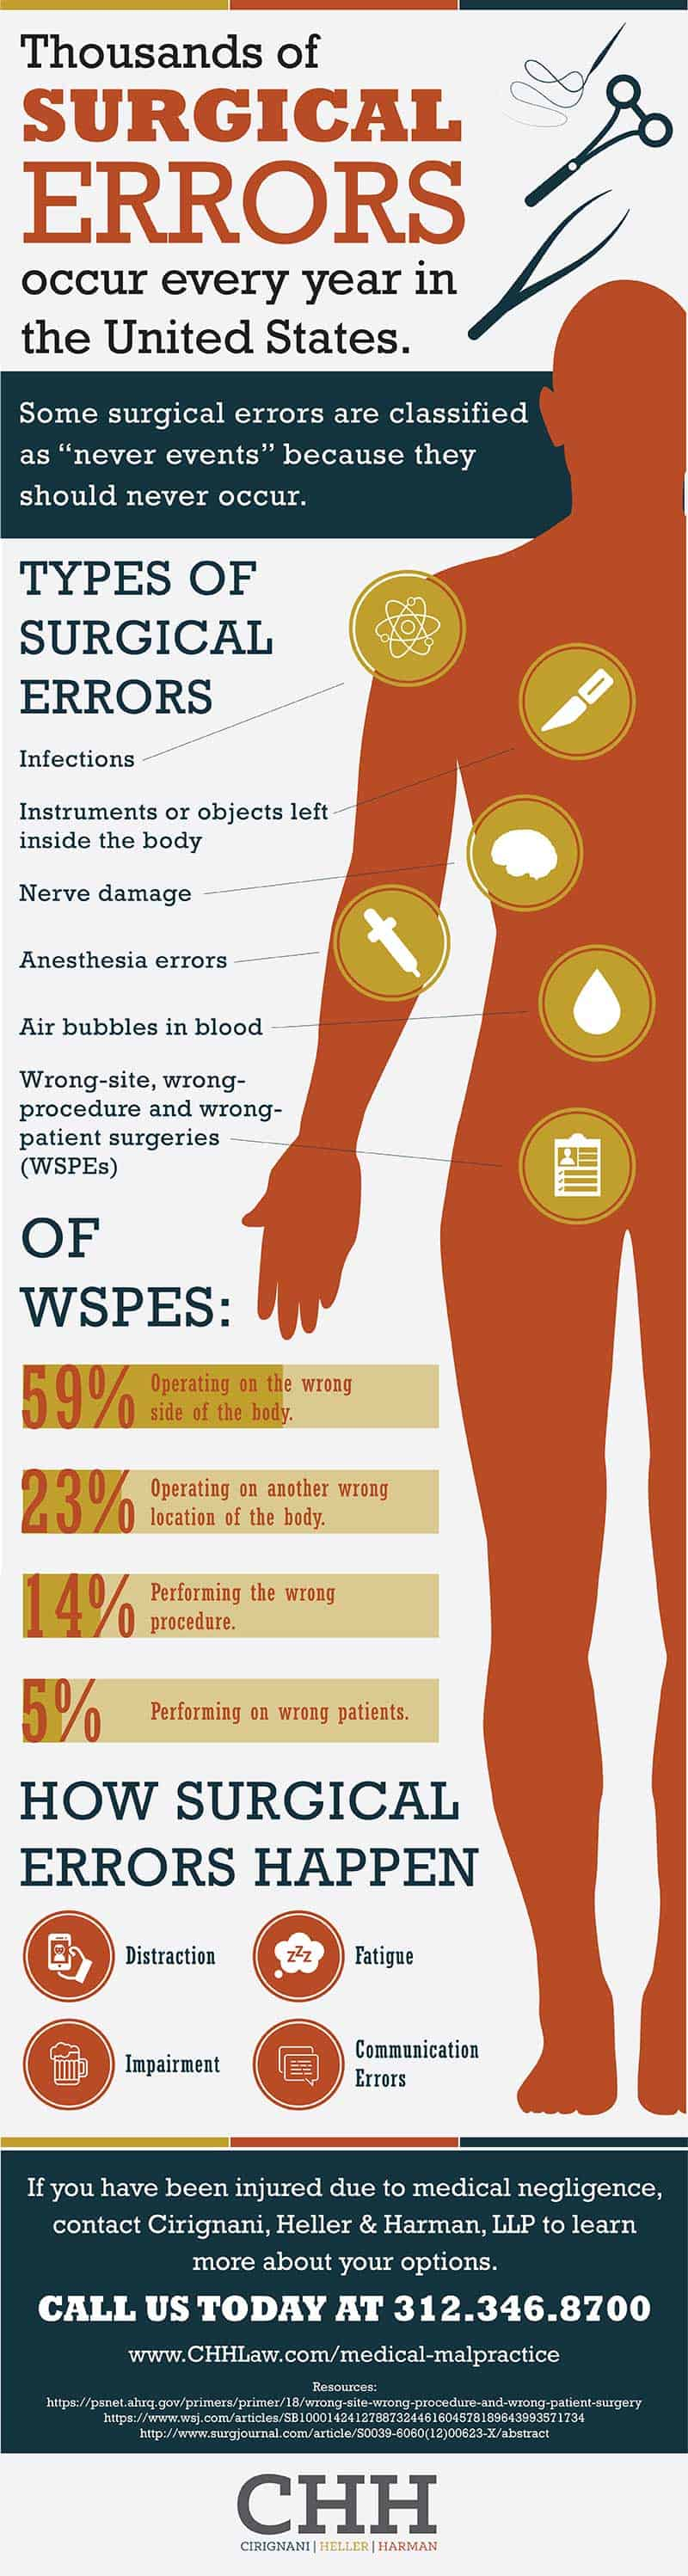 CHH Surgical Errors infographic